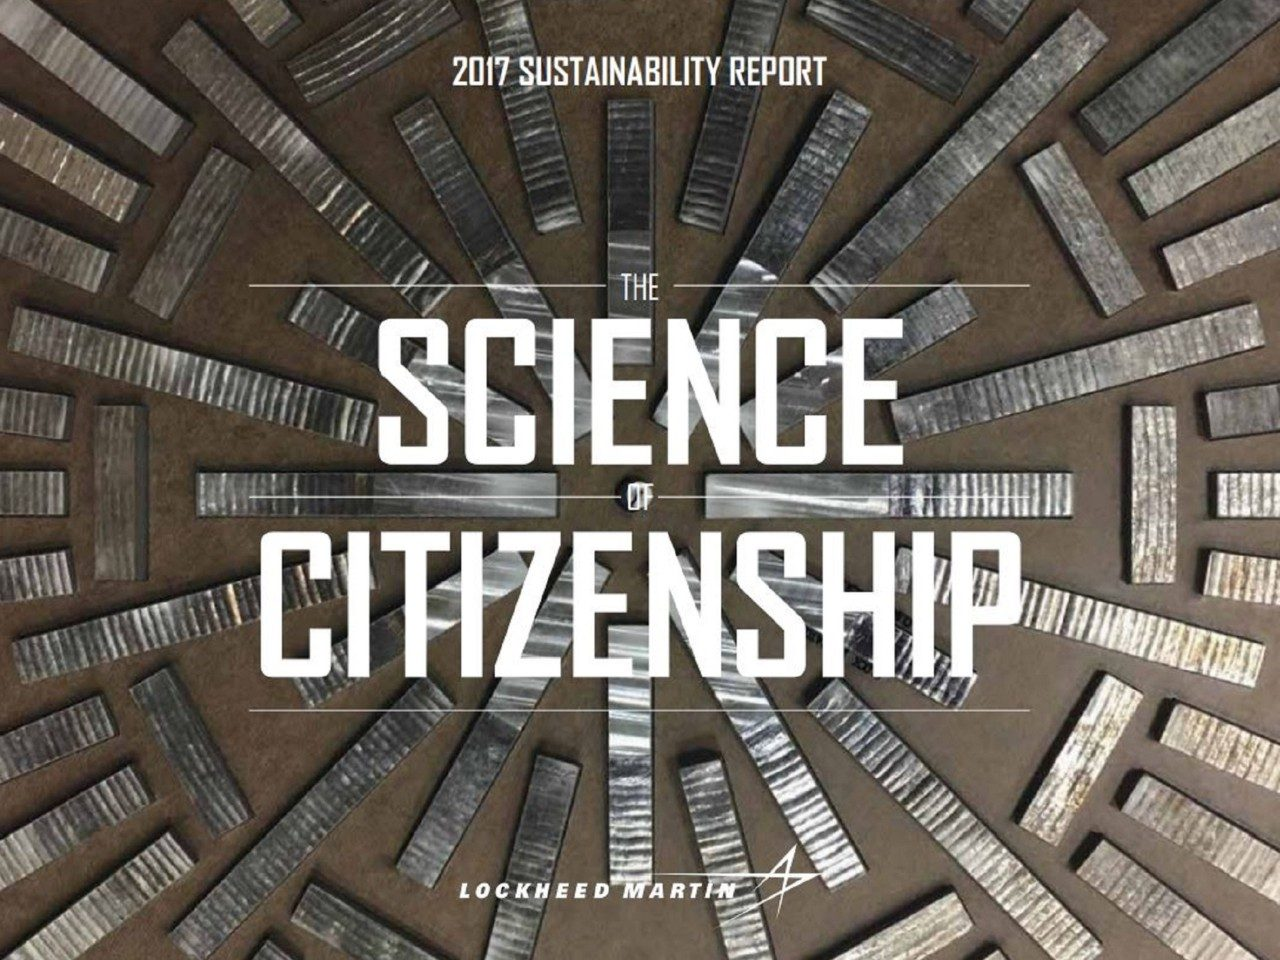 Lockheed Martin 2017 Sustainability Report